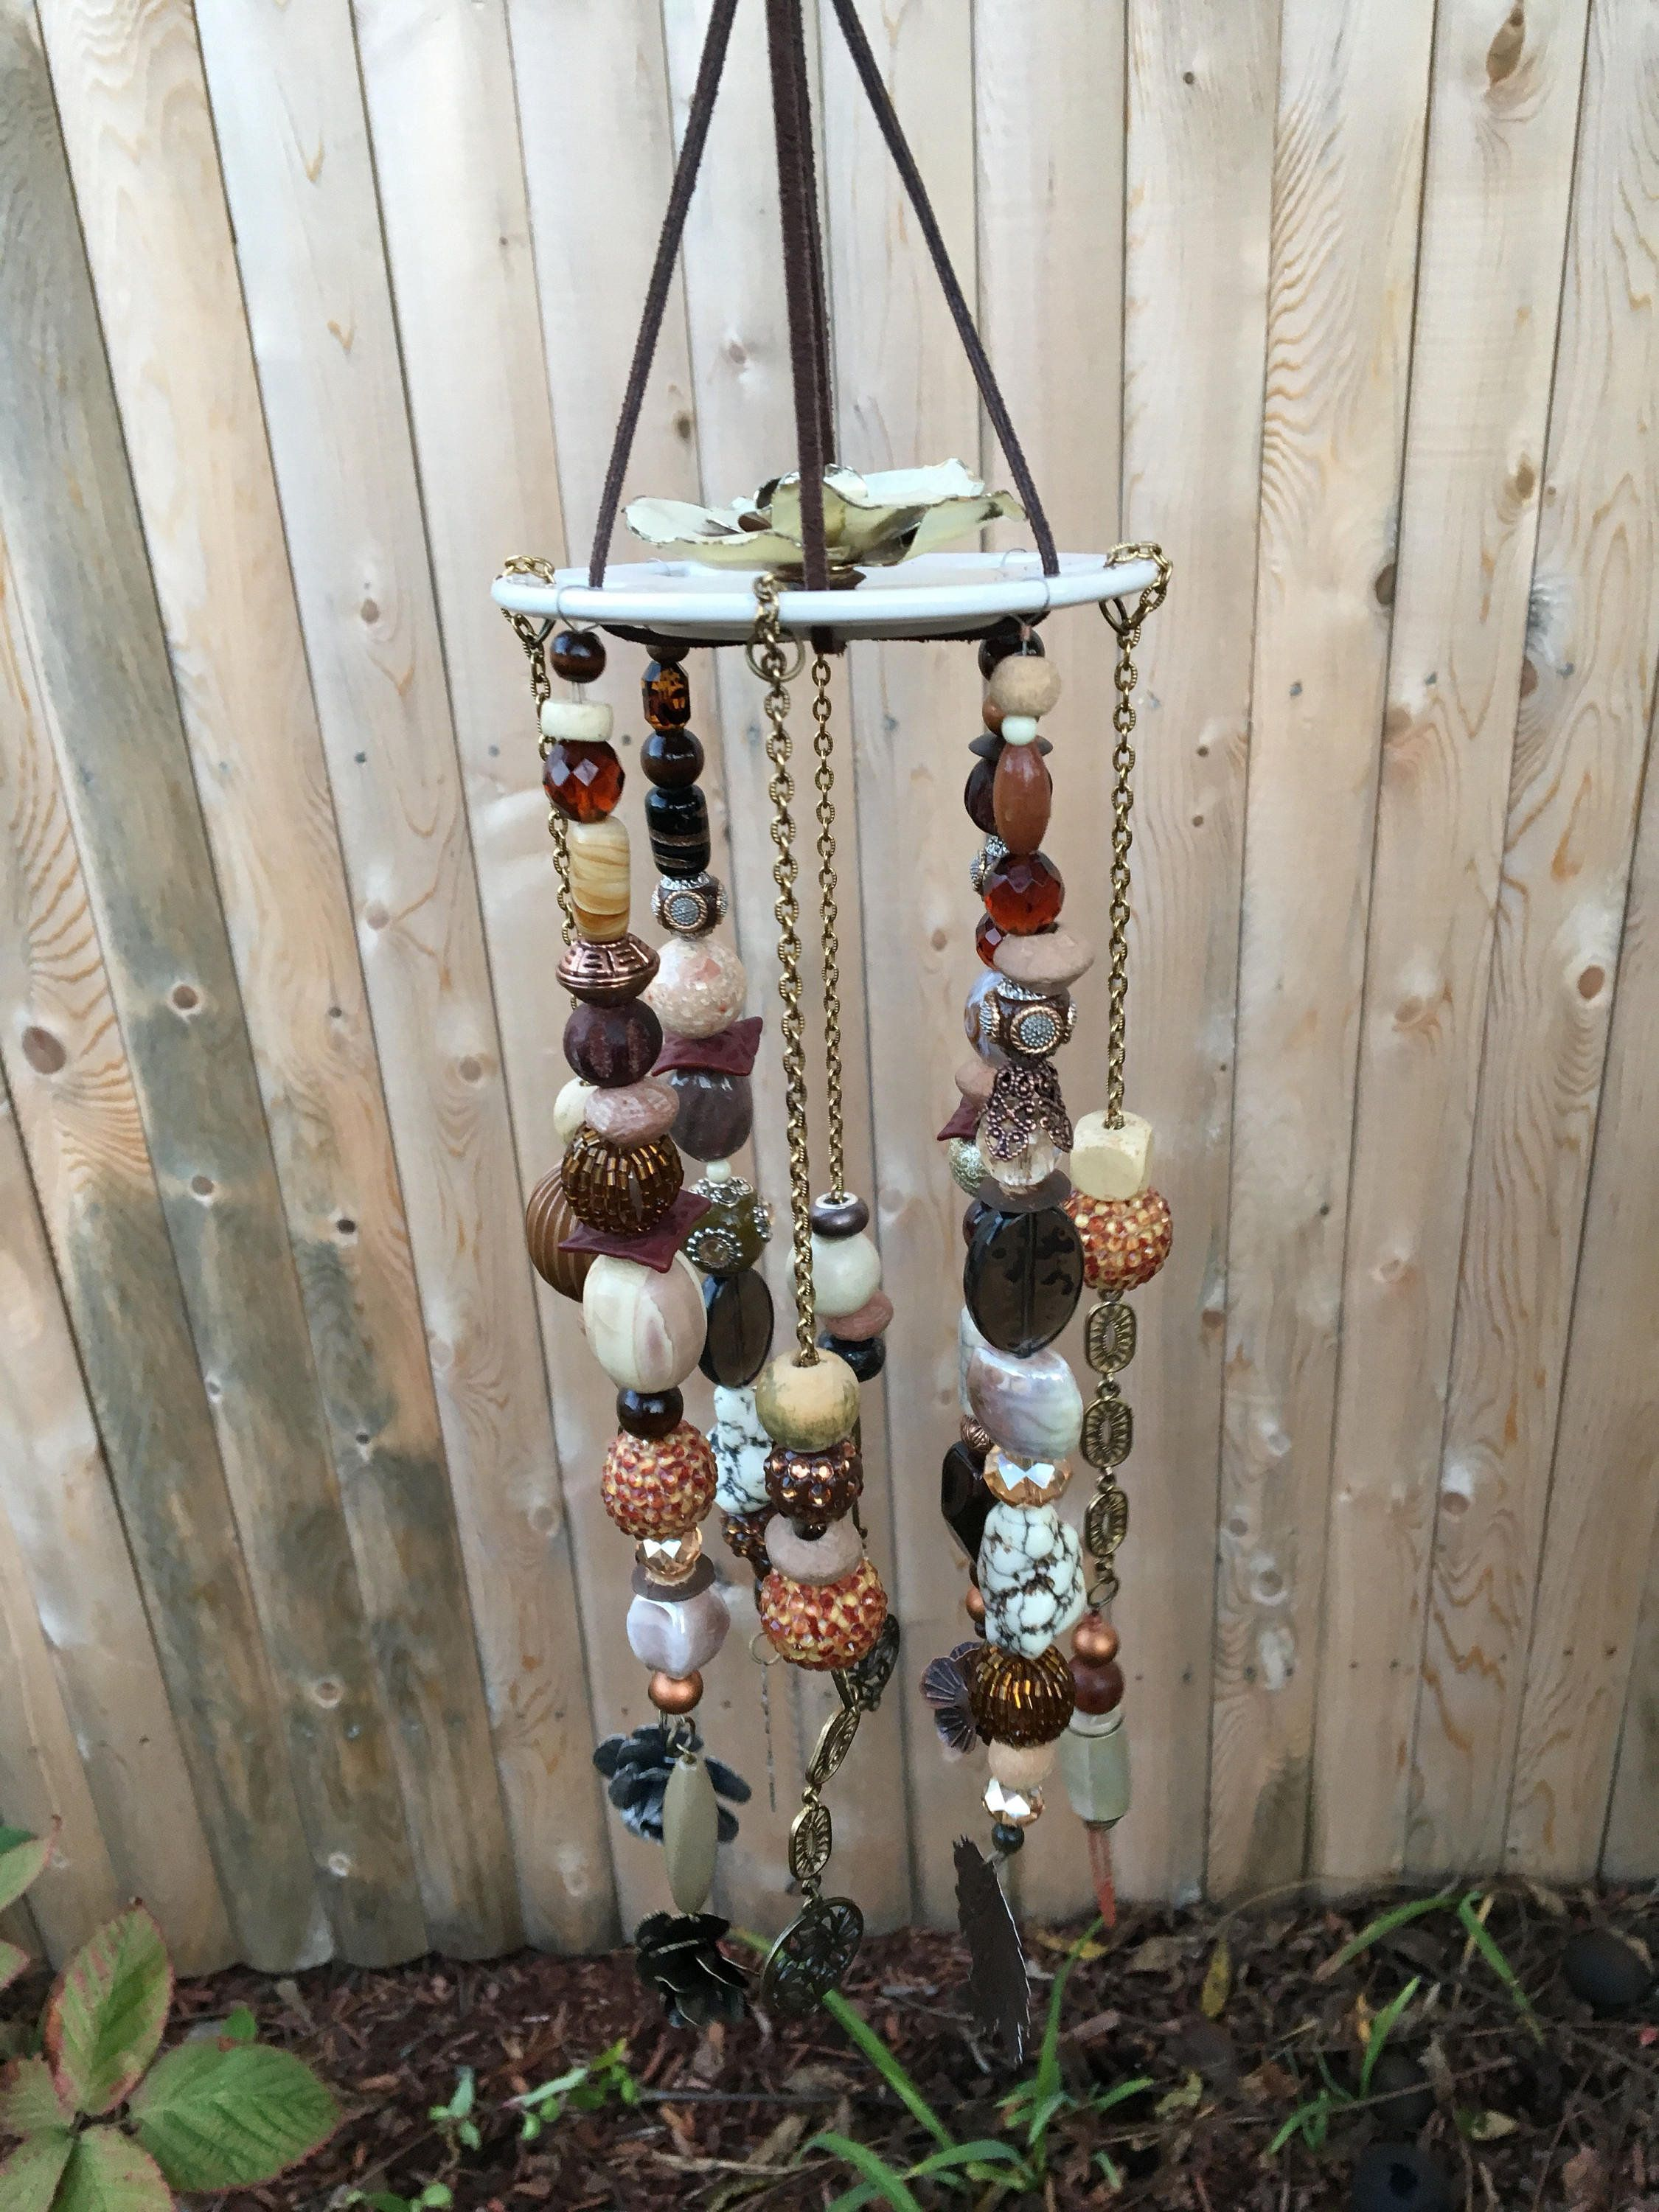 Brown Ivory Mobile Art Upcycled Bead Wind Chimes Boho Home Decor Hanging Garden Decor Outside Sun Catcher Window Wind Chimes Hanging Mobile Hanging Garden